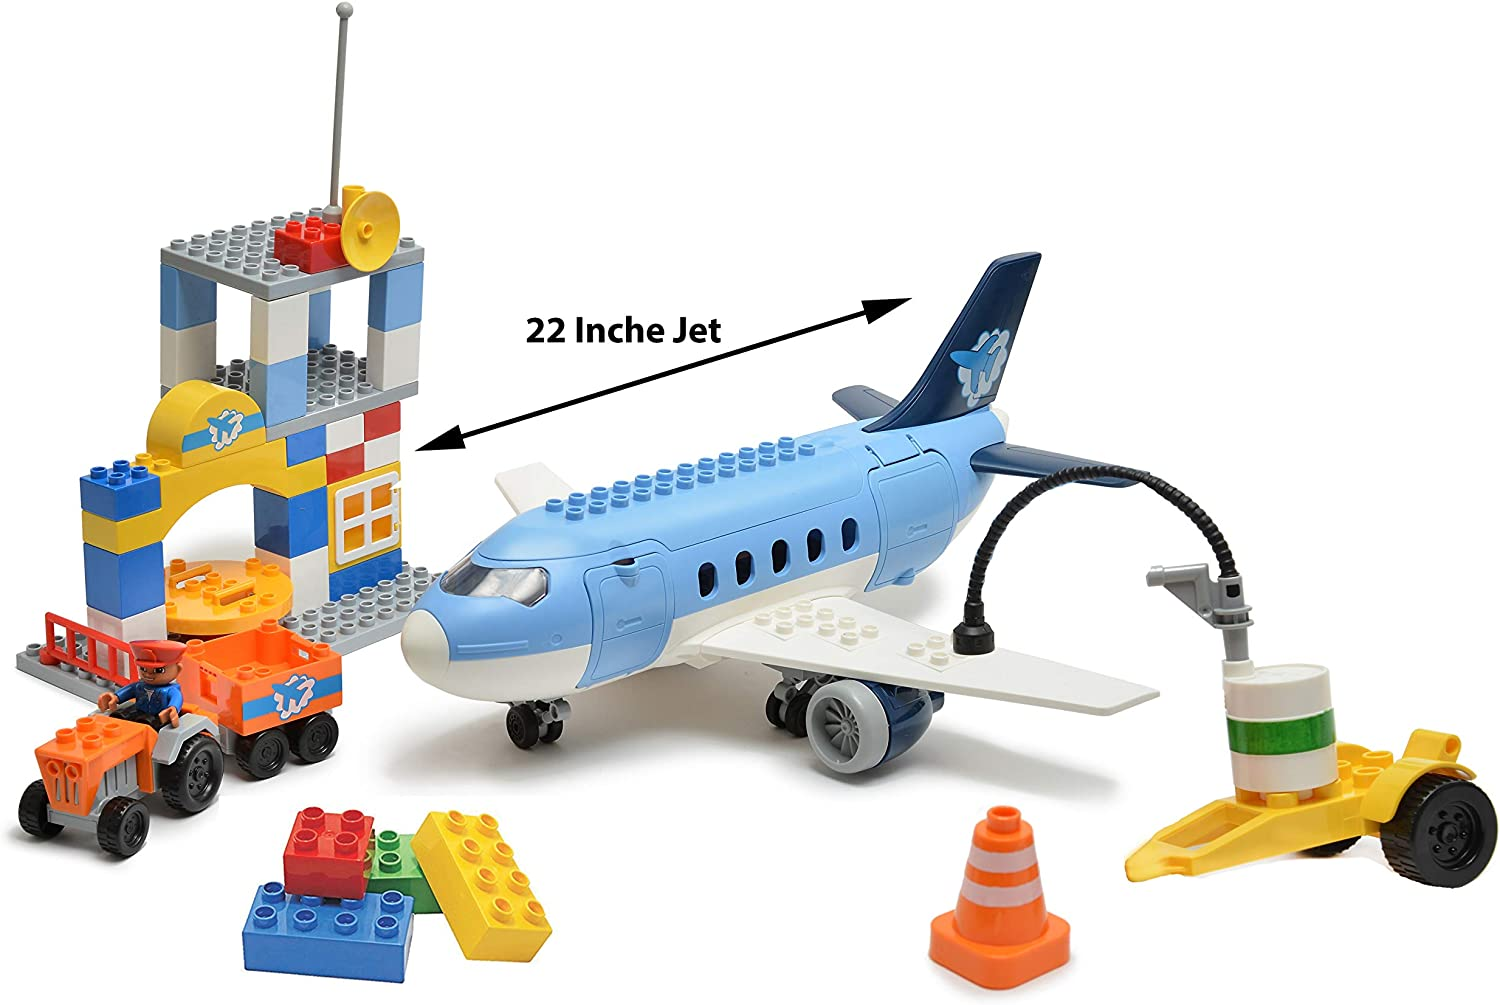 My First Preschool Airport Passenger Terminal With Airplane Jumbo Jet Building Bricks Set - Compatible with Duplo and all major brands